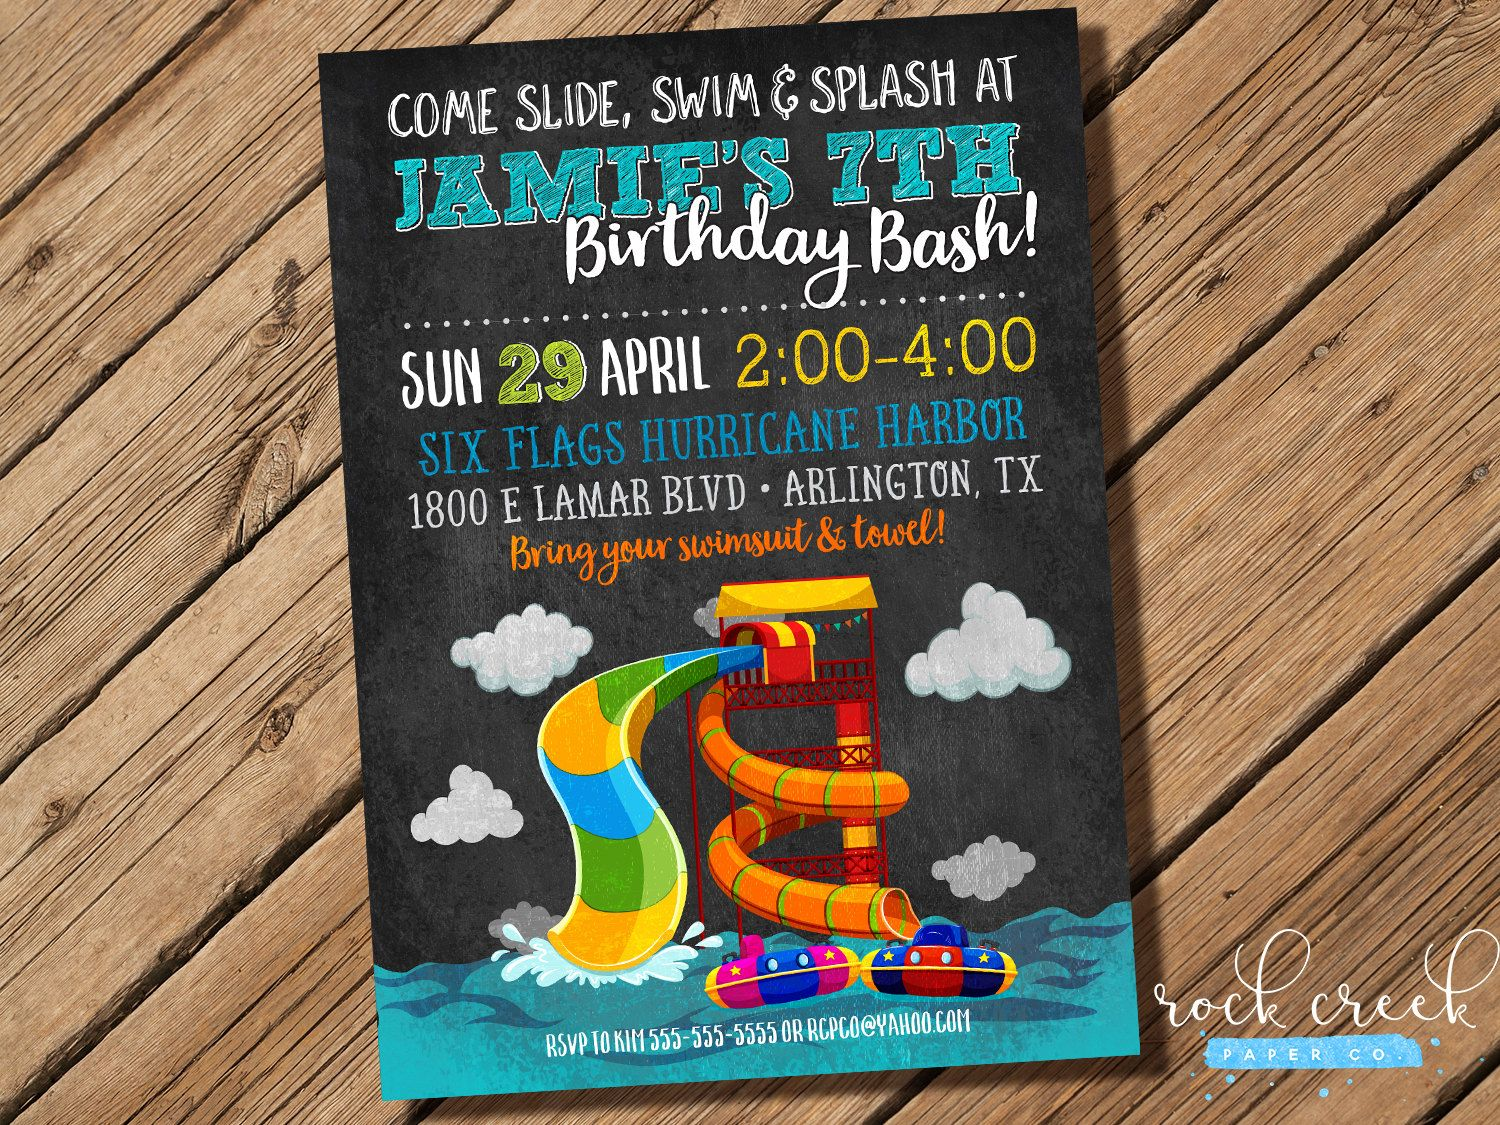 Waterpark Party Invitation Water Slide Party Wave